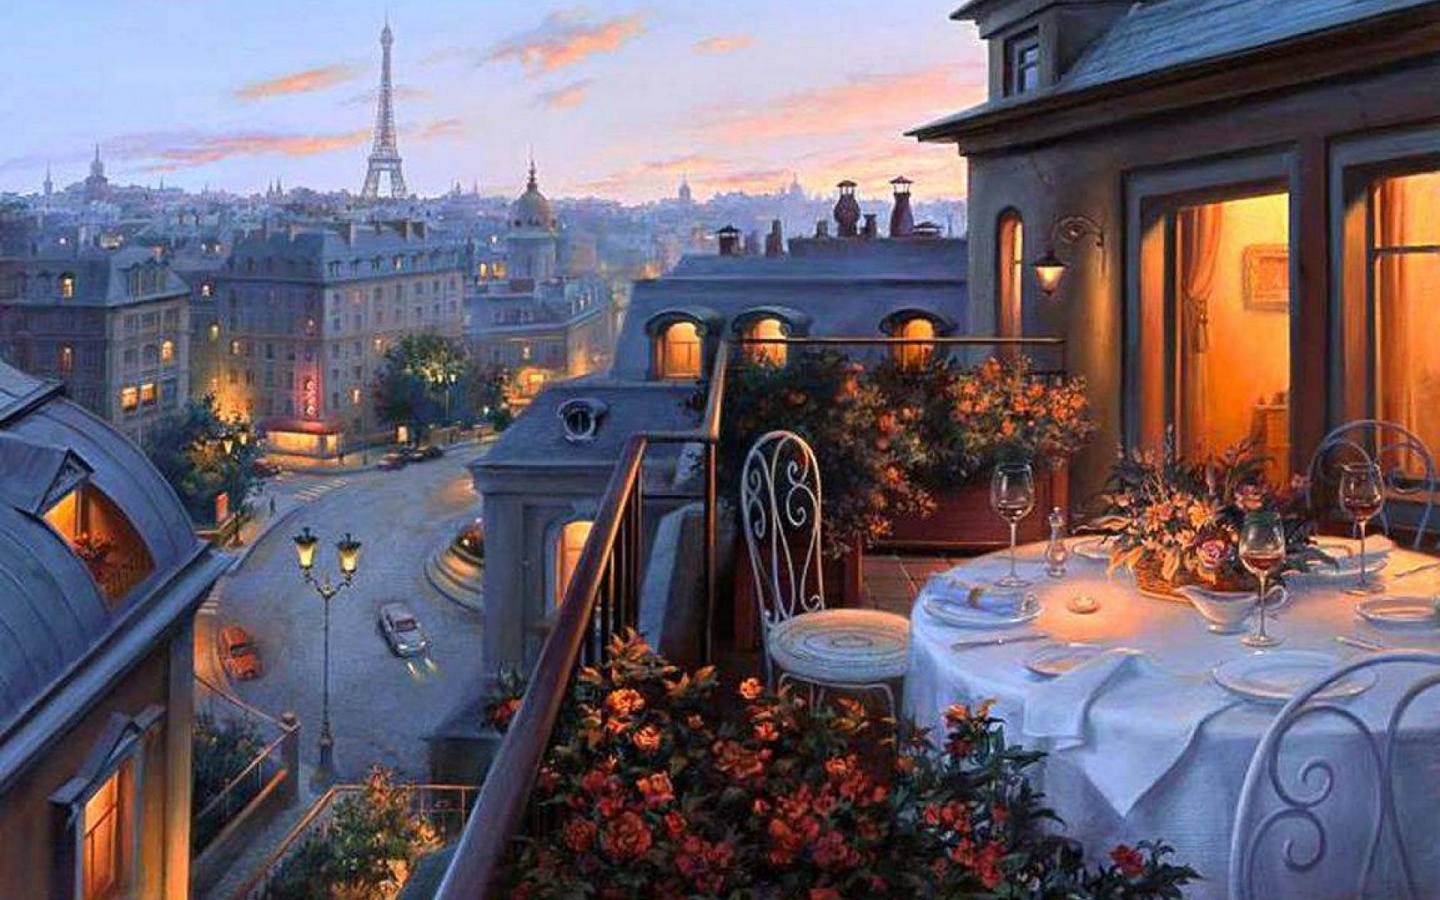 1440x900 terrace dinner evening lookout desktop pc and mac for Dinner on the terrace